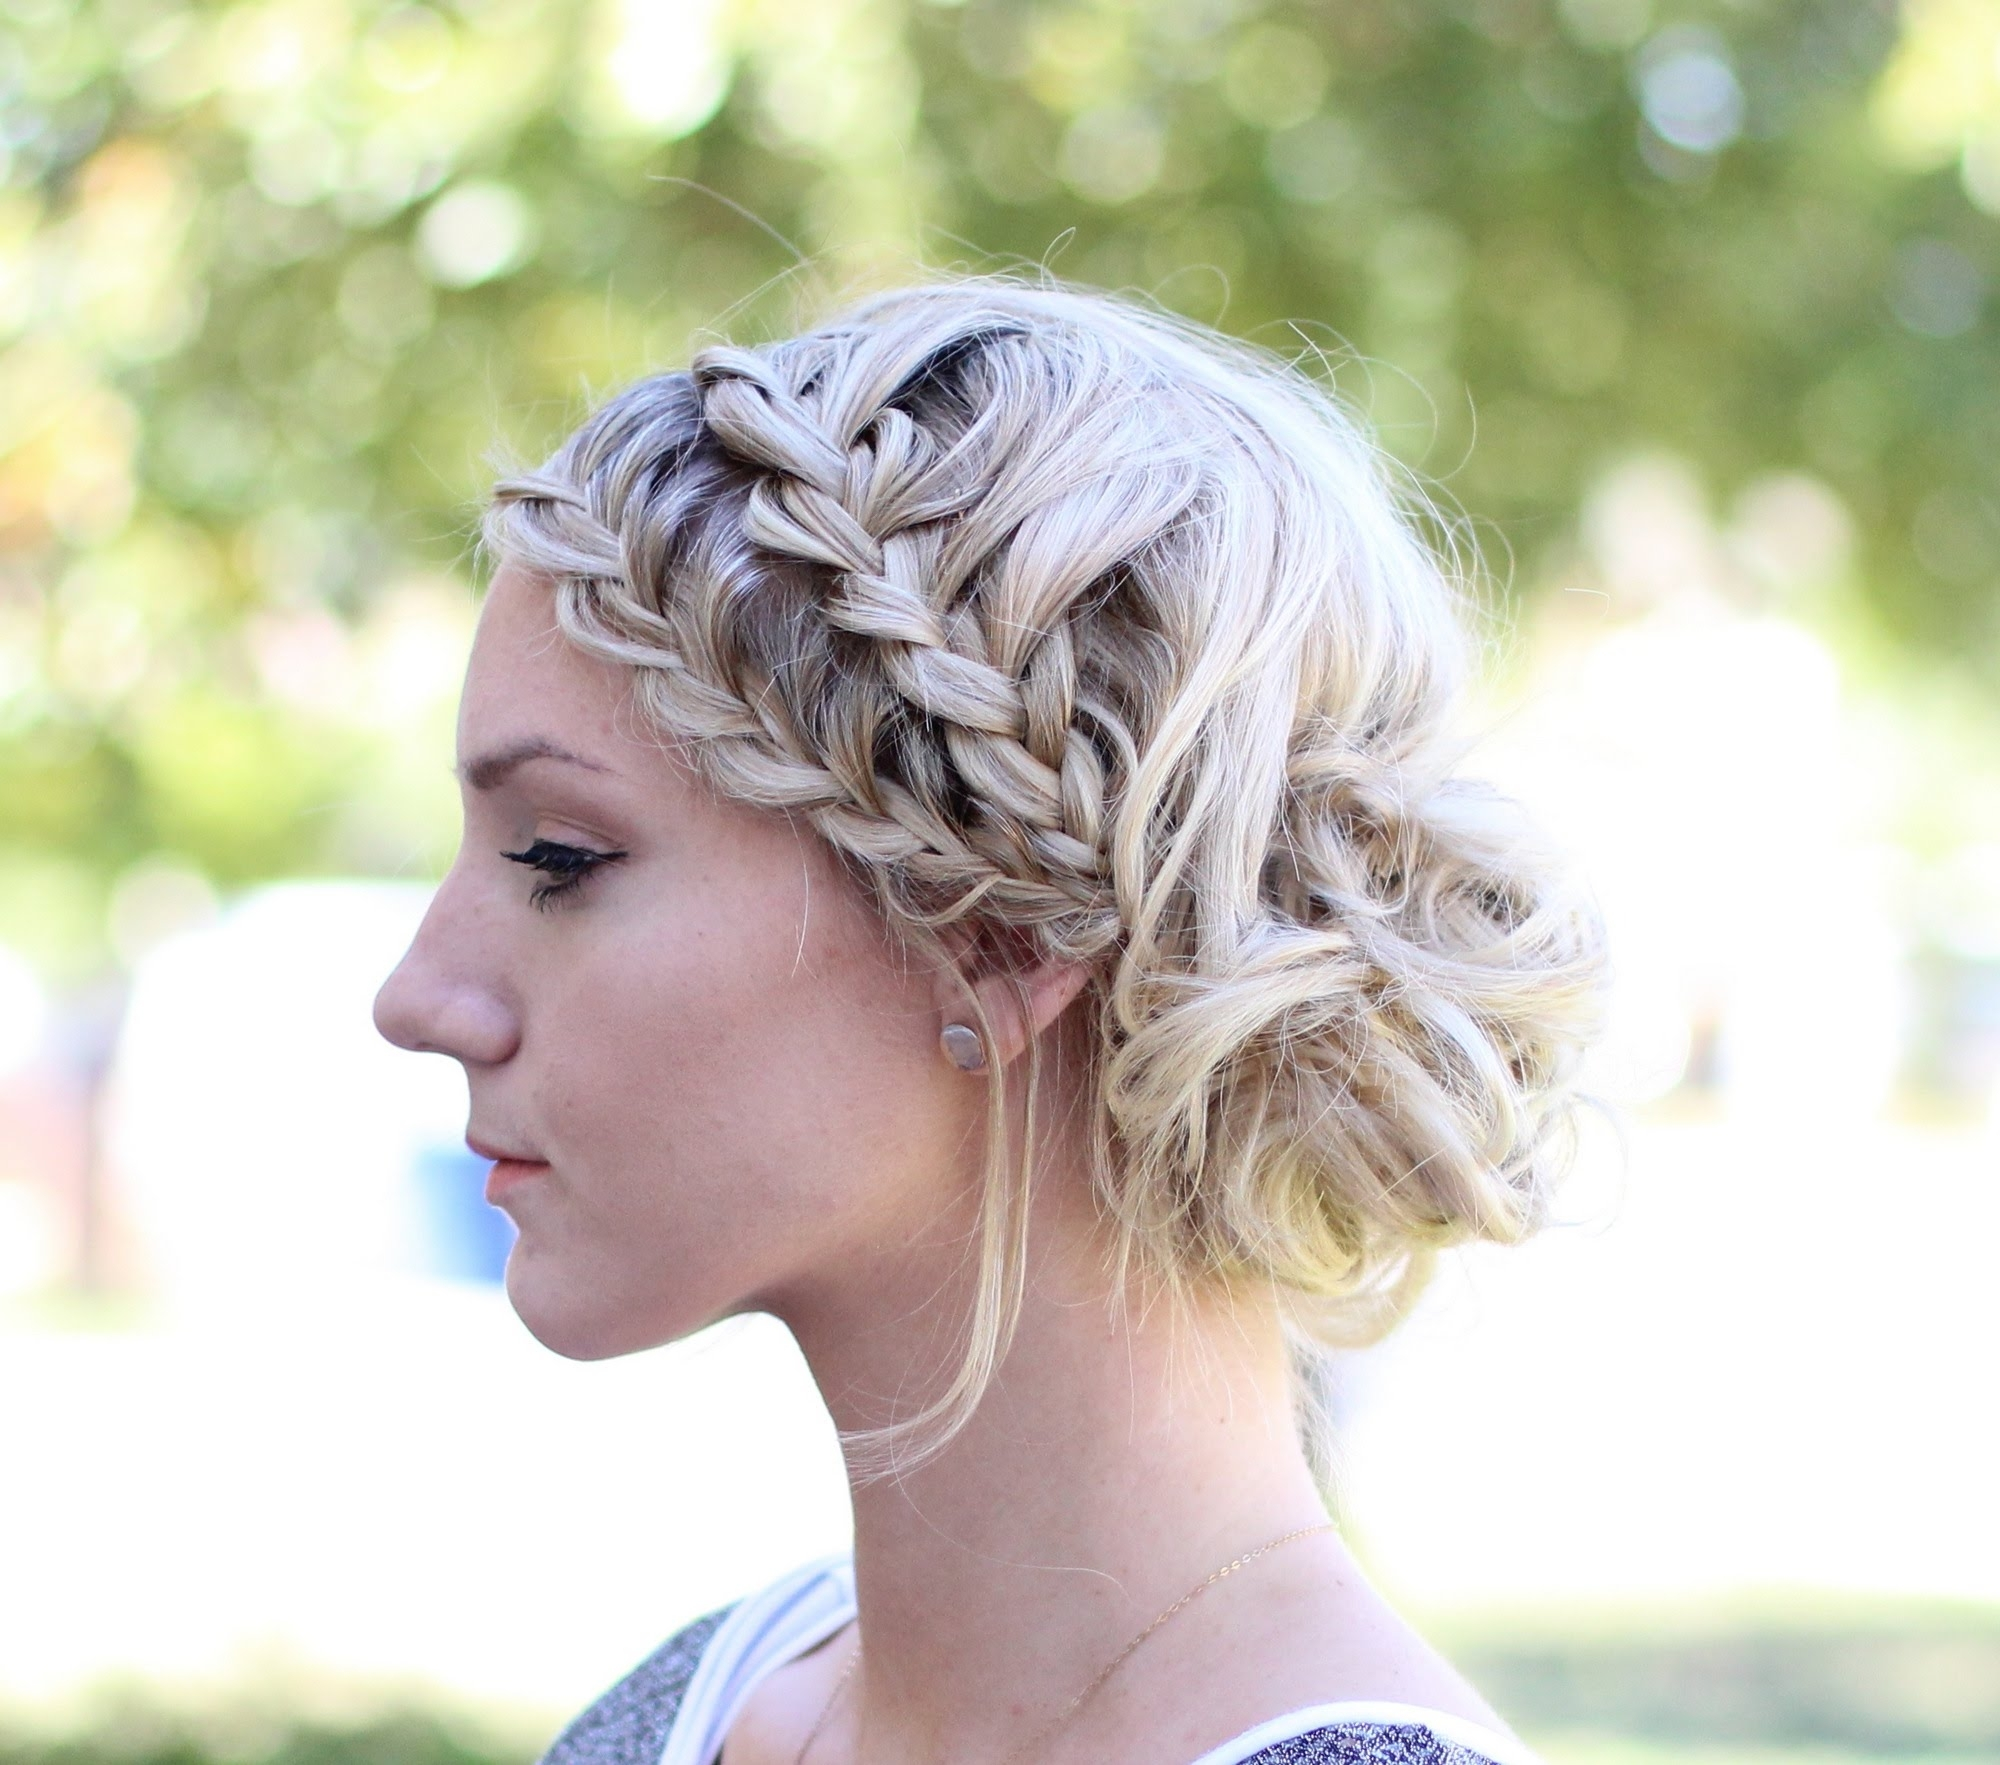 How To: Double French Lace Braids Into A Messy Bun – Youtube With Most Up To Date French Braids Into Bun (View 9 of 15)